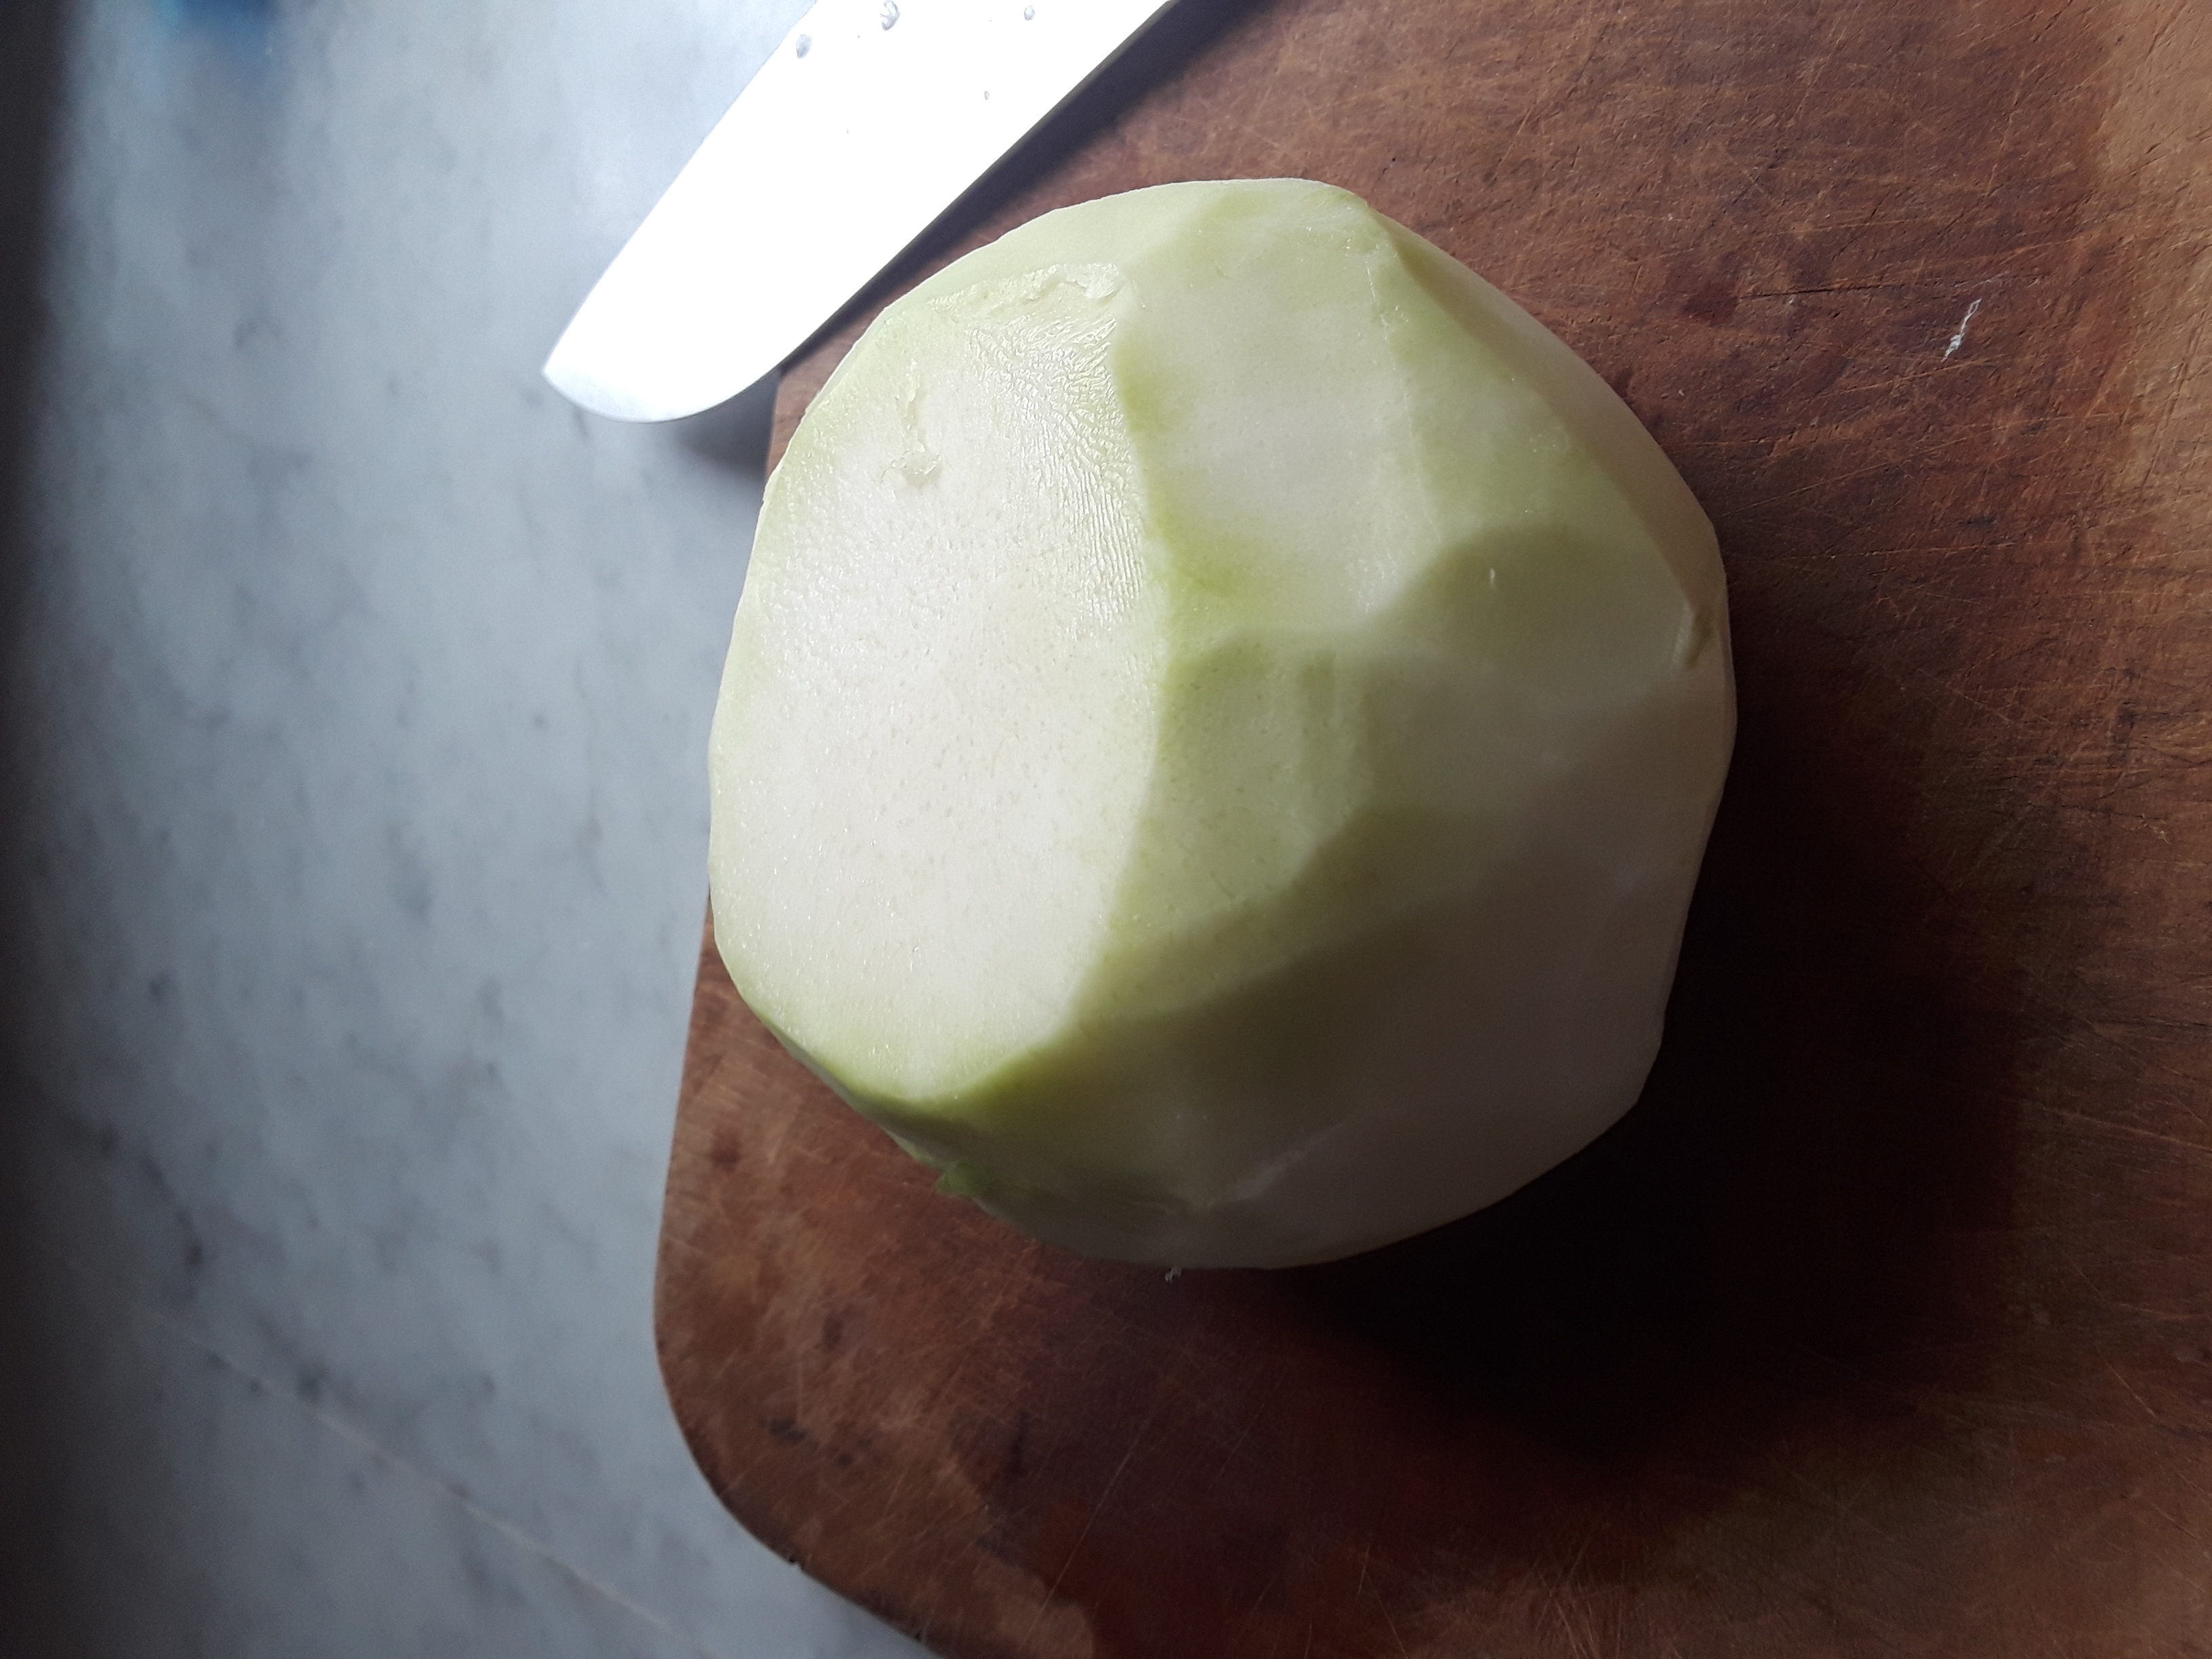 ends cut off the peeled kohlrabi bulb